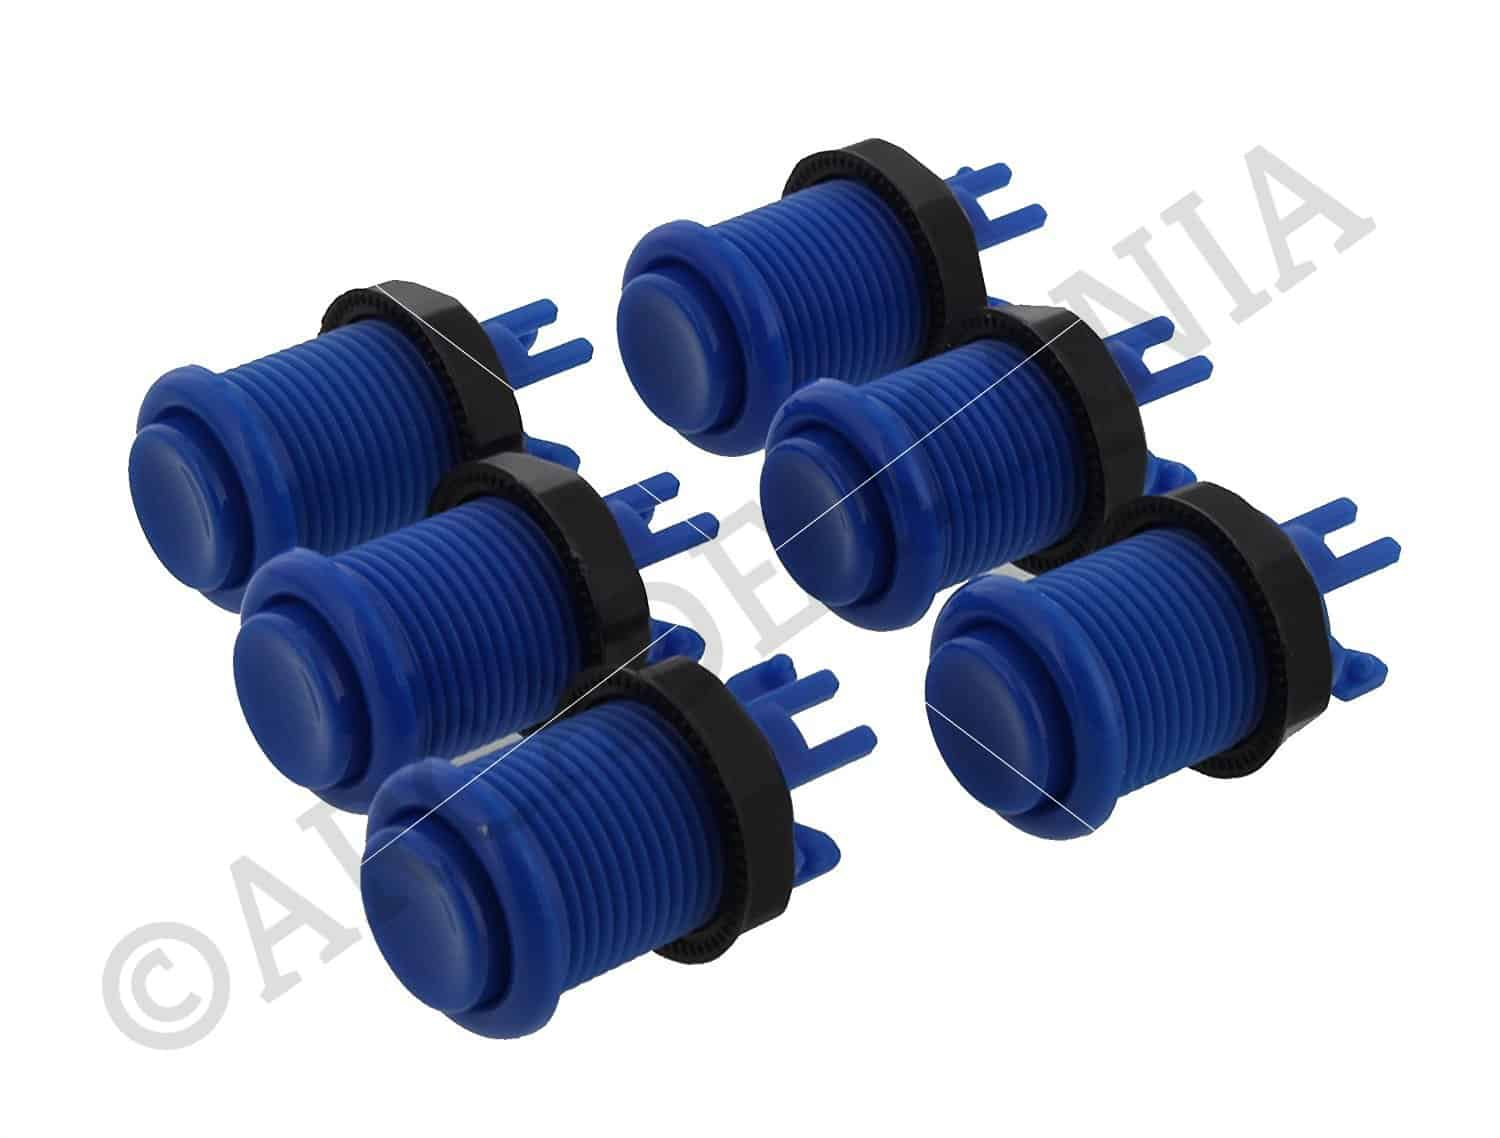 Image of 6 Blue Colour Concave Buttons